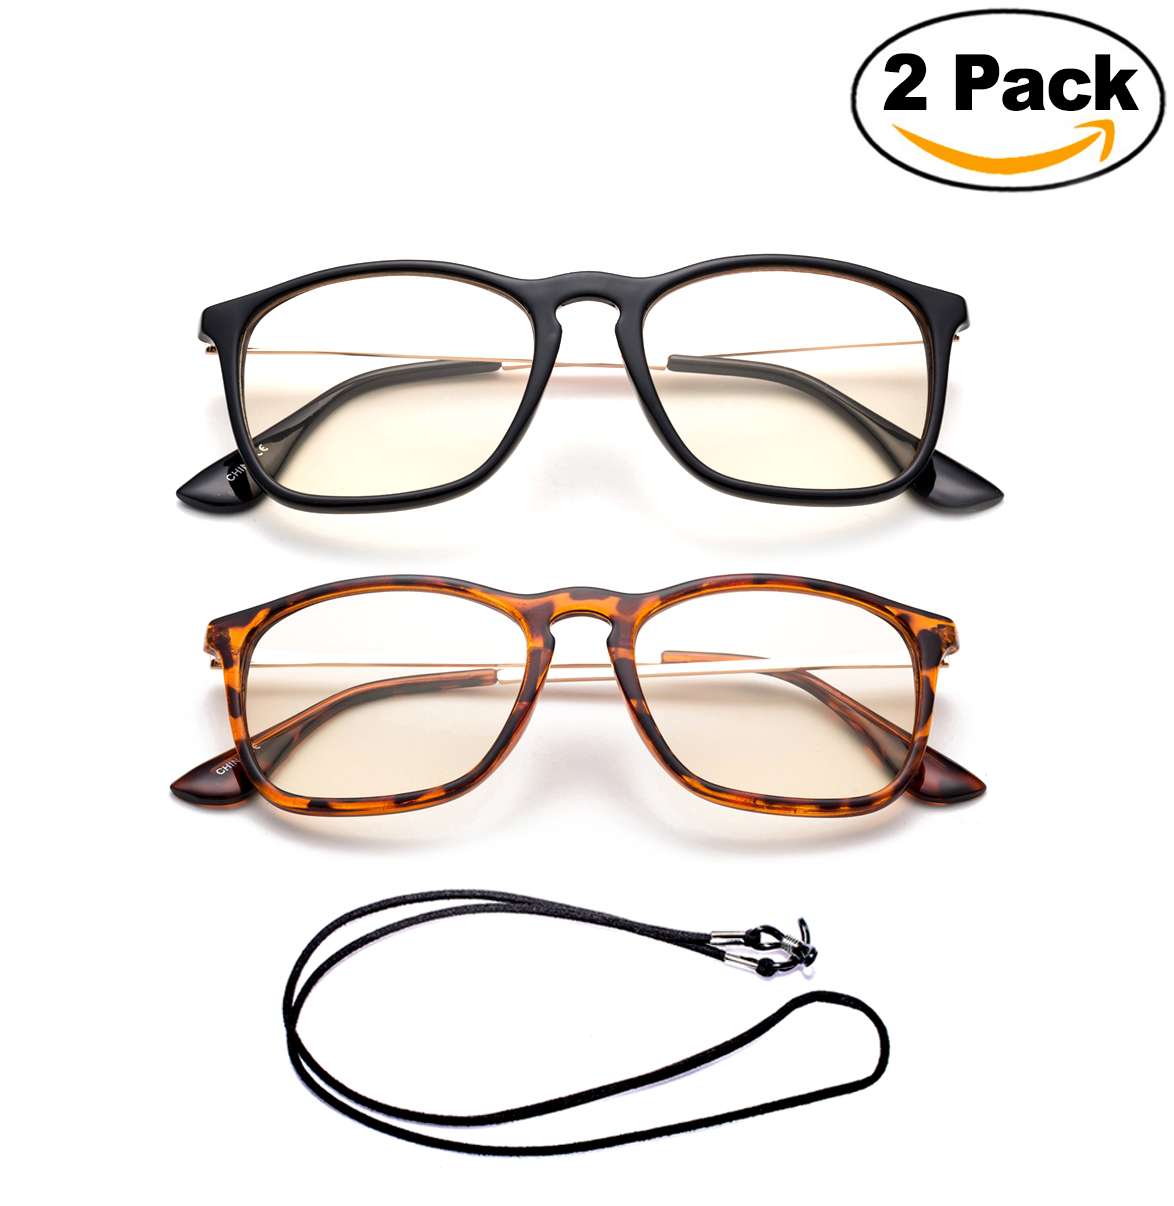 Newbee Fashion - Anti-Reflective Comfortable Computer Reading Glasses (No Magnification) Helps Eye Strain, Fatigue and Dry Eyes from Digital Devices with Anti-Blue Light, Anti-UV and Anti-Glare